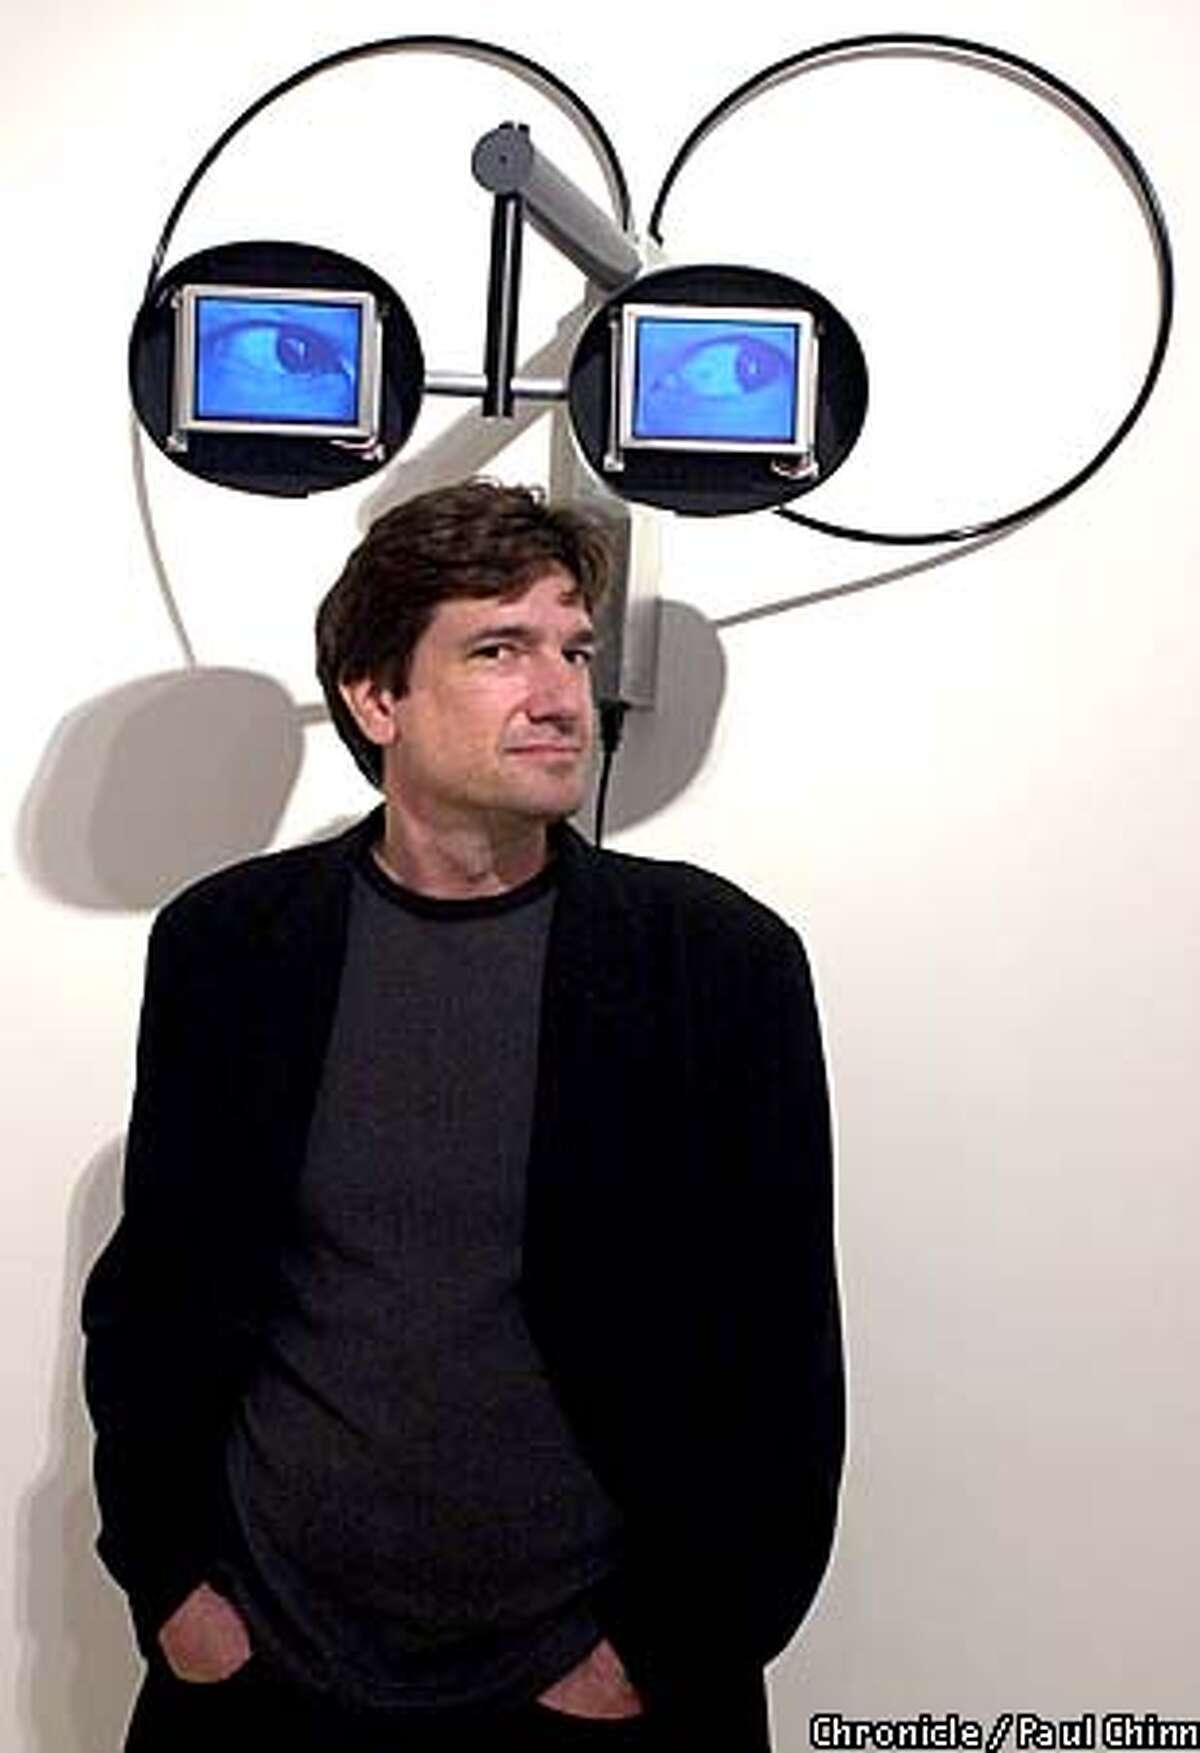 Sculptor/artist Alan Rath has created a series of sculptures using computer components and video screens which blink and wink at viewers. PAUL CHINN/S.F. CHRONICLE